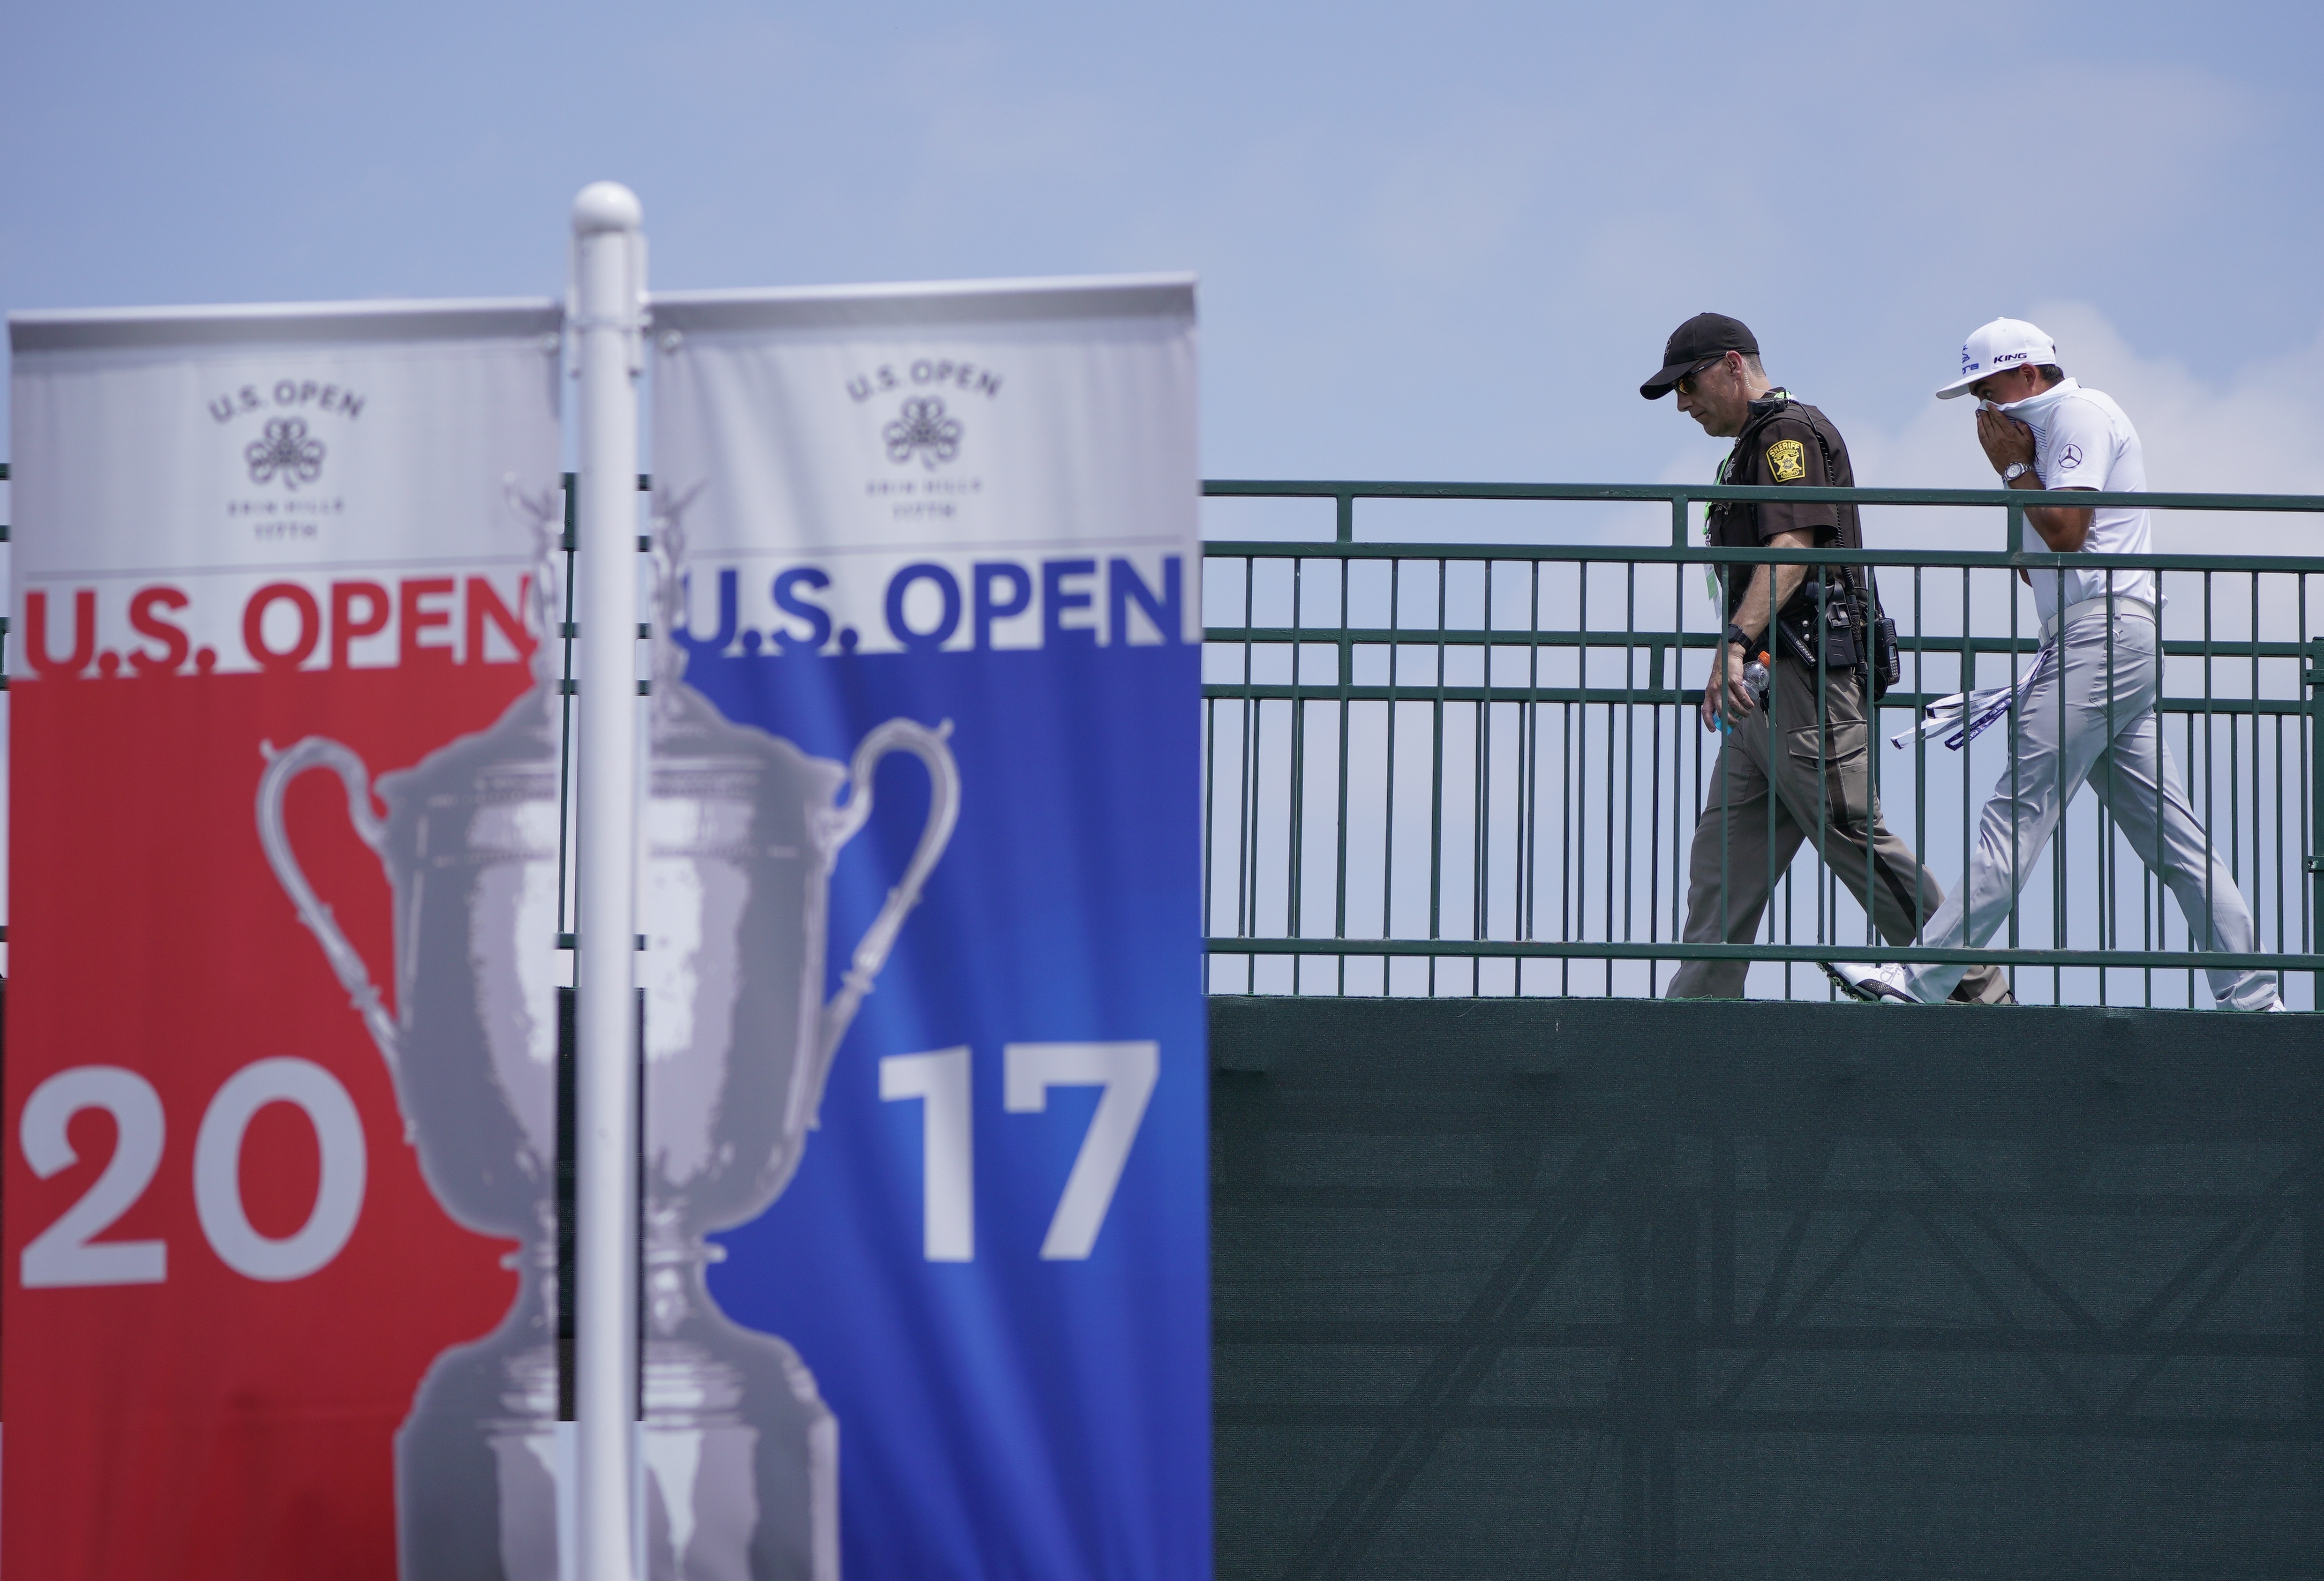 Rickie Fowler walks to the clubhouse after a practice round for the U.S. Open golf tournament Monday, June 12, 2017, at Erin Hills in Erin, Wis. (AP Photo/Morry Gash)